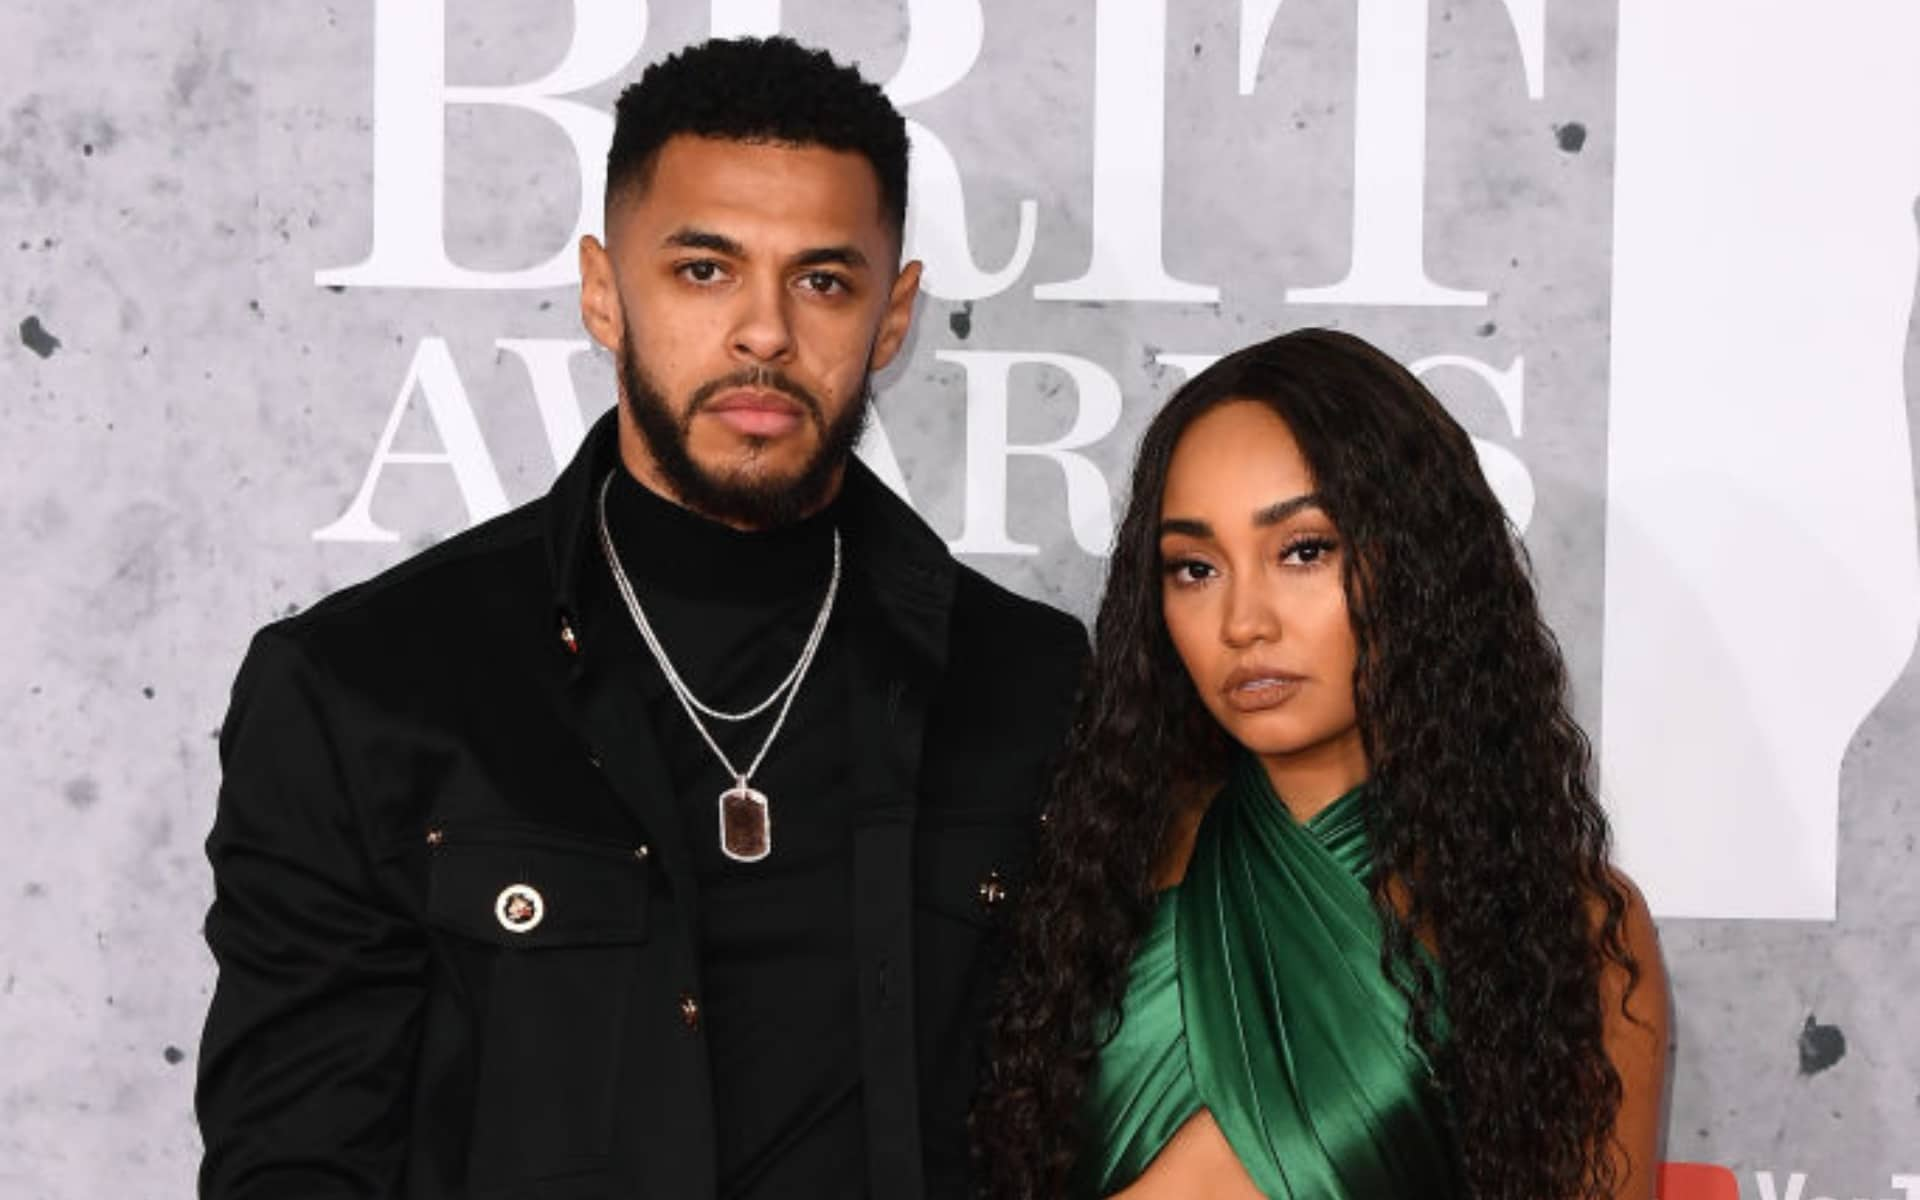 Little Mix' Leigh-Anne praised for confronting fiancé over colourist tweets